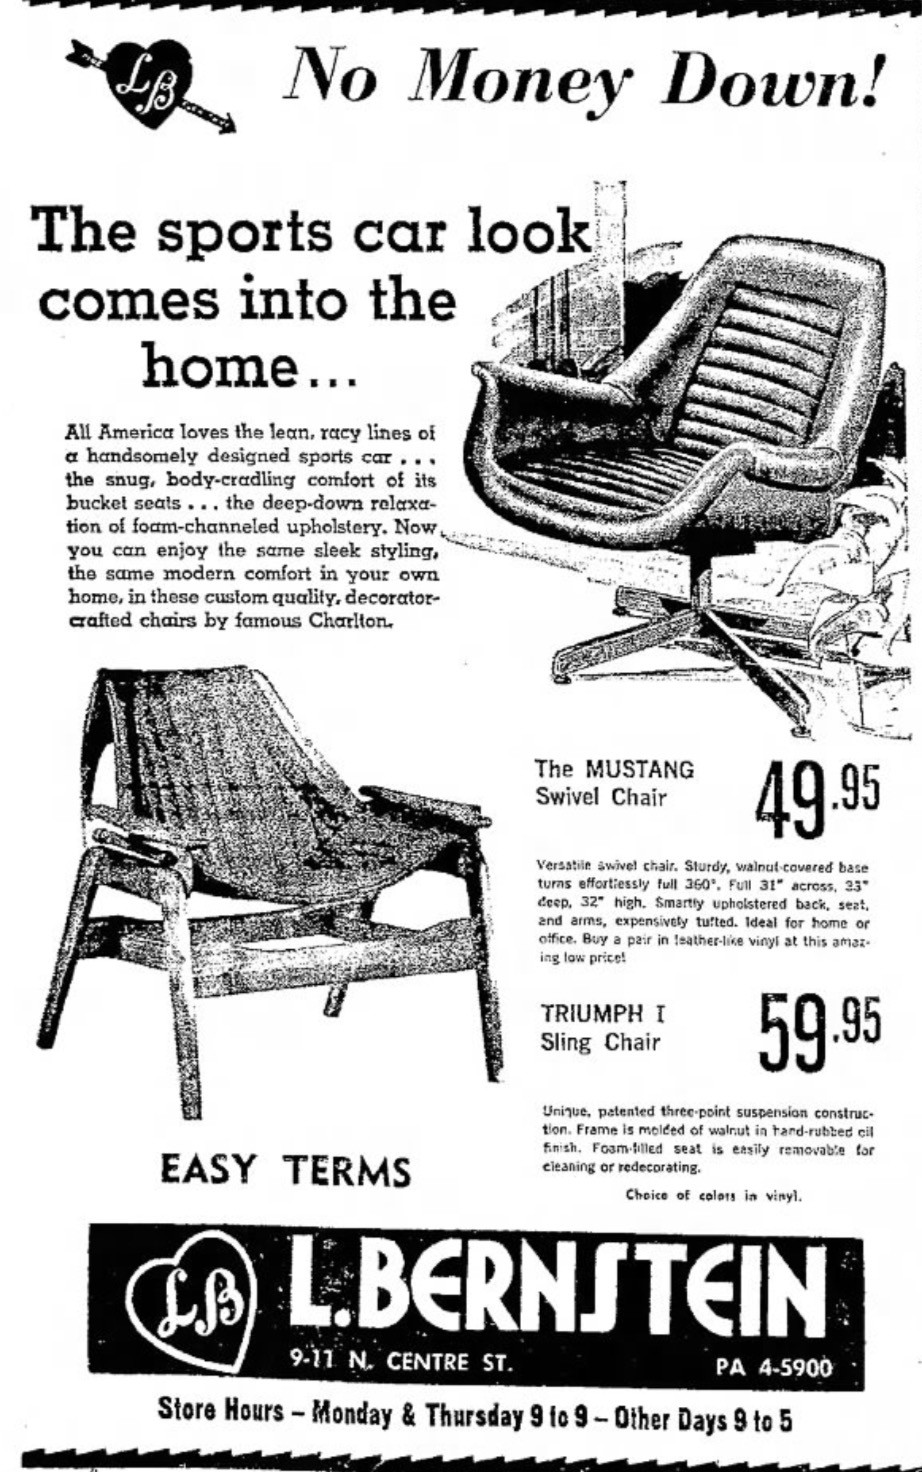 Vintage ad Jerry Johnson Sling Chair